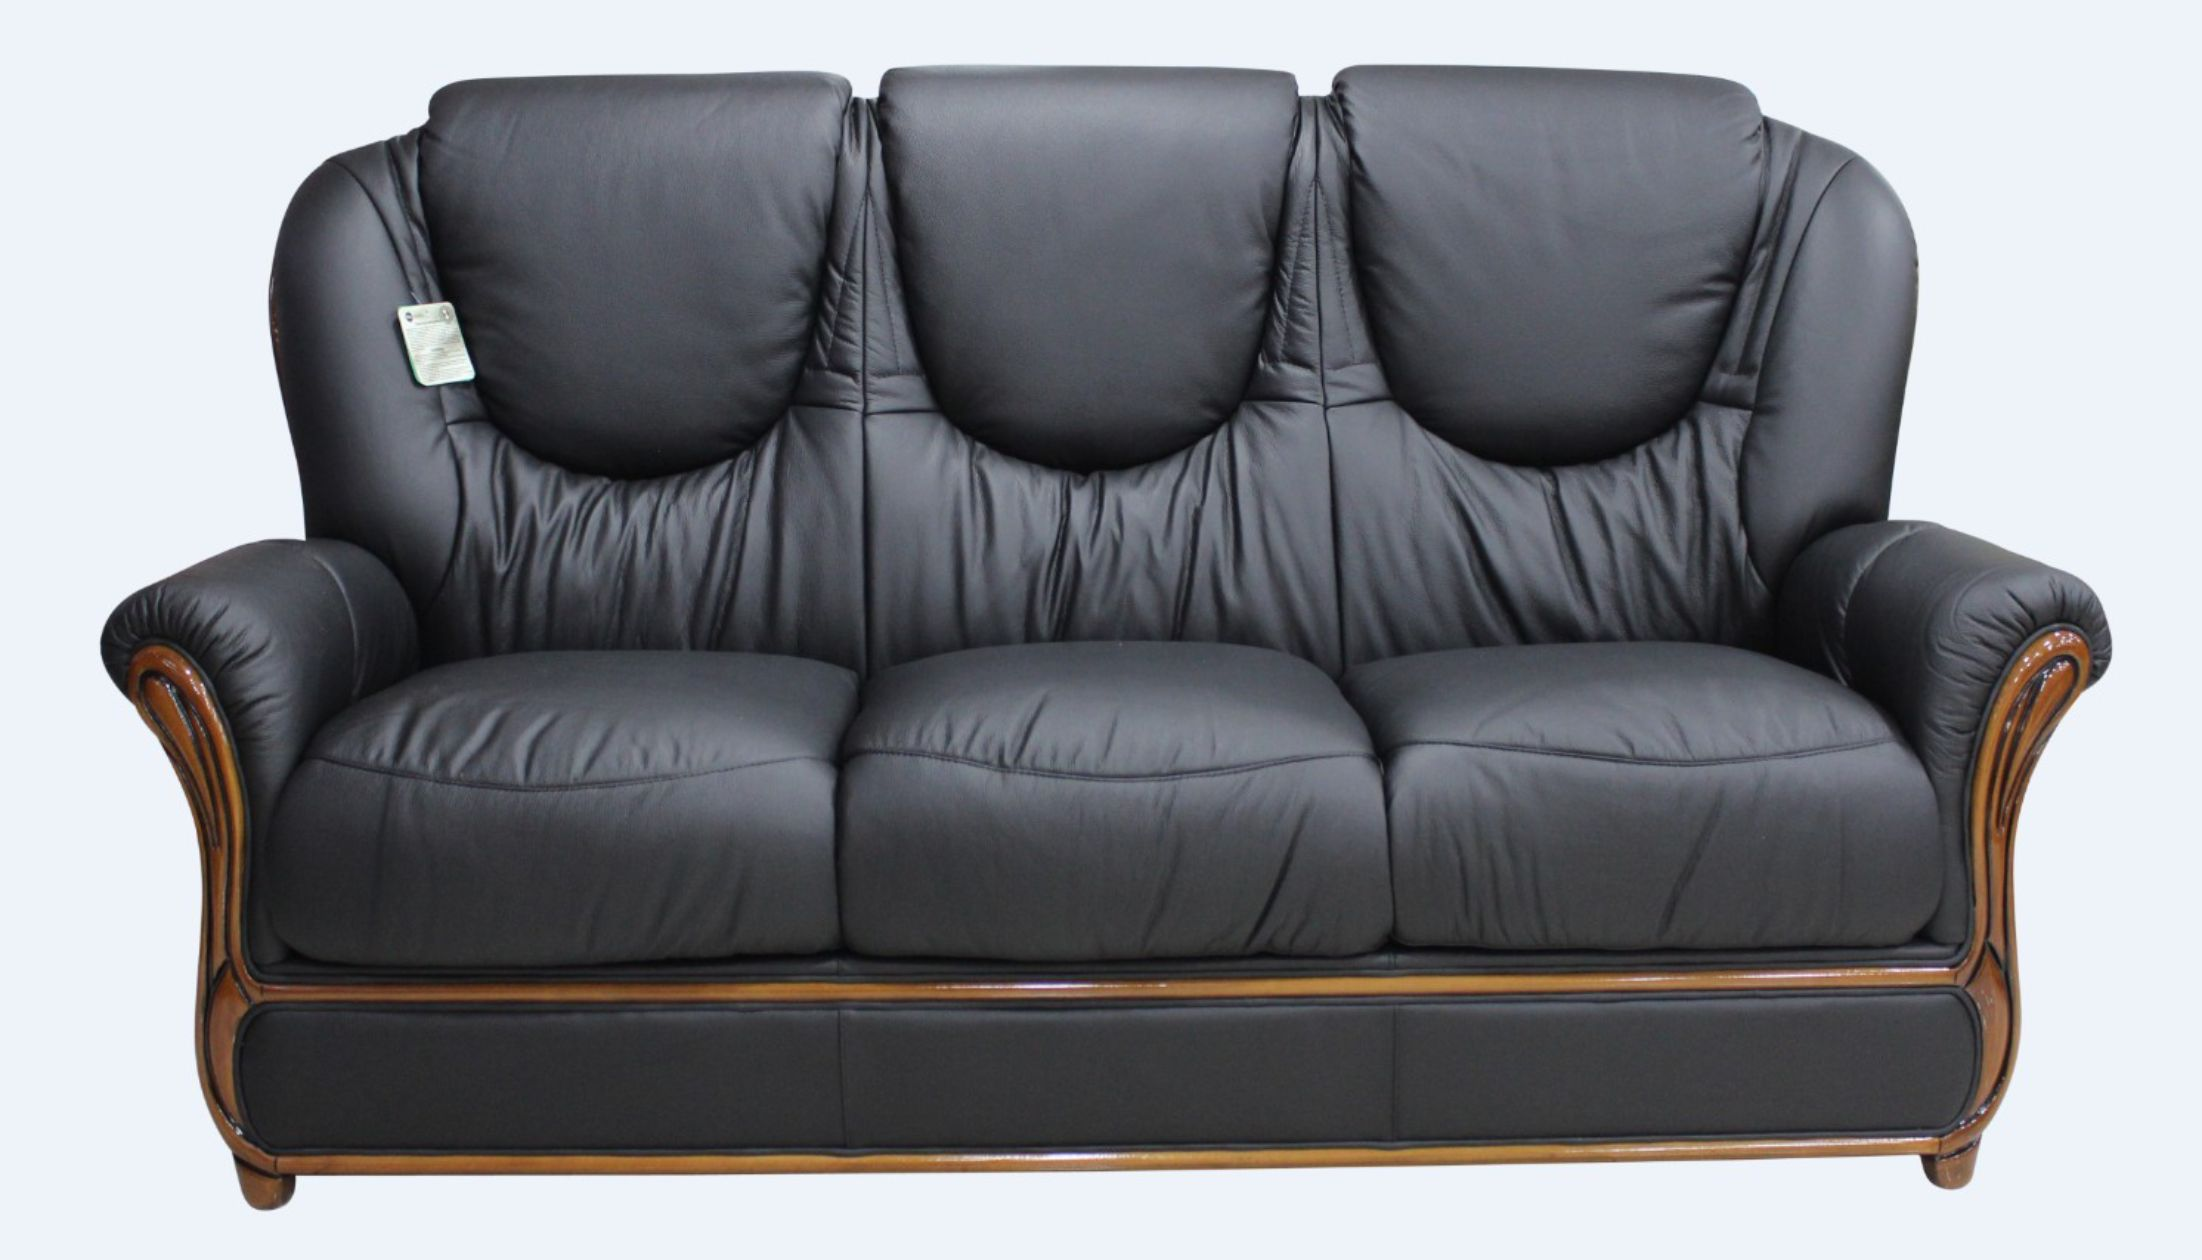 Juliet genuine italian leather 3 seater sofa settee black Italian leather sofa uk